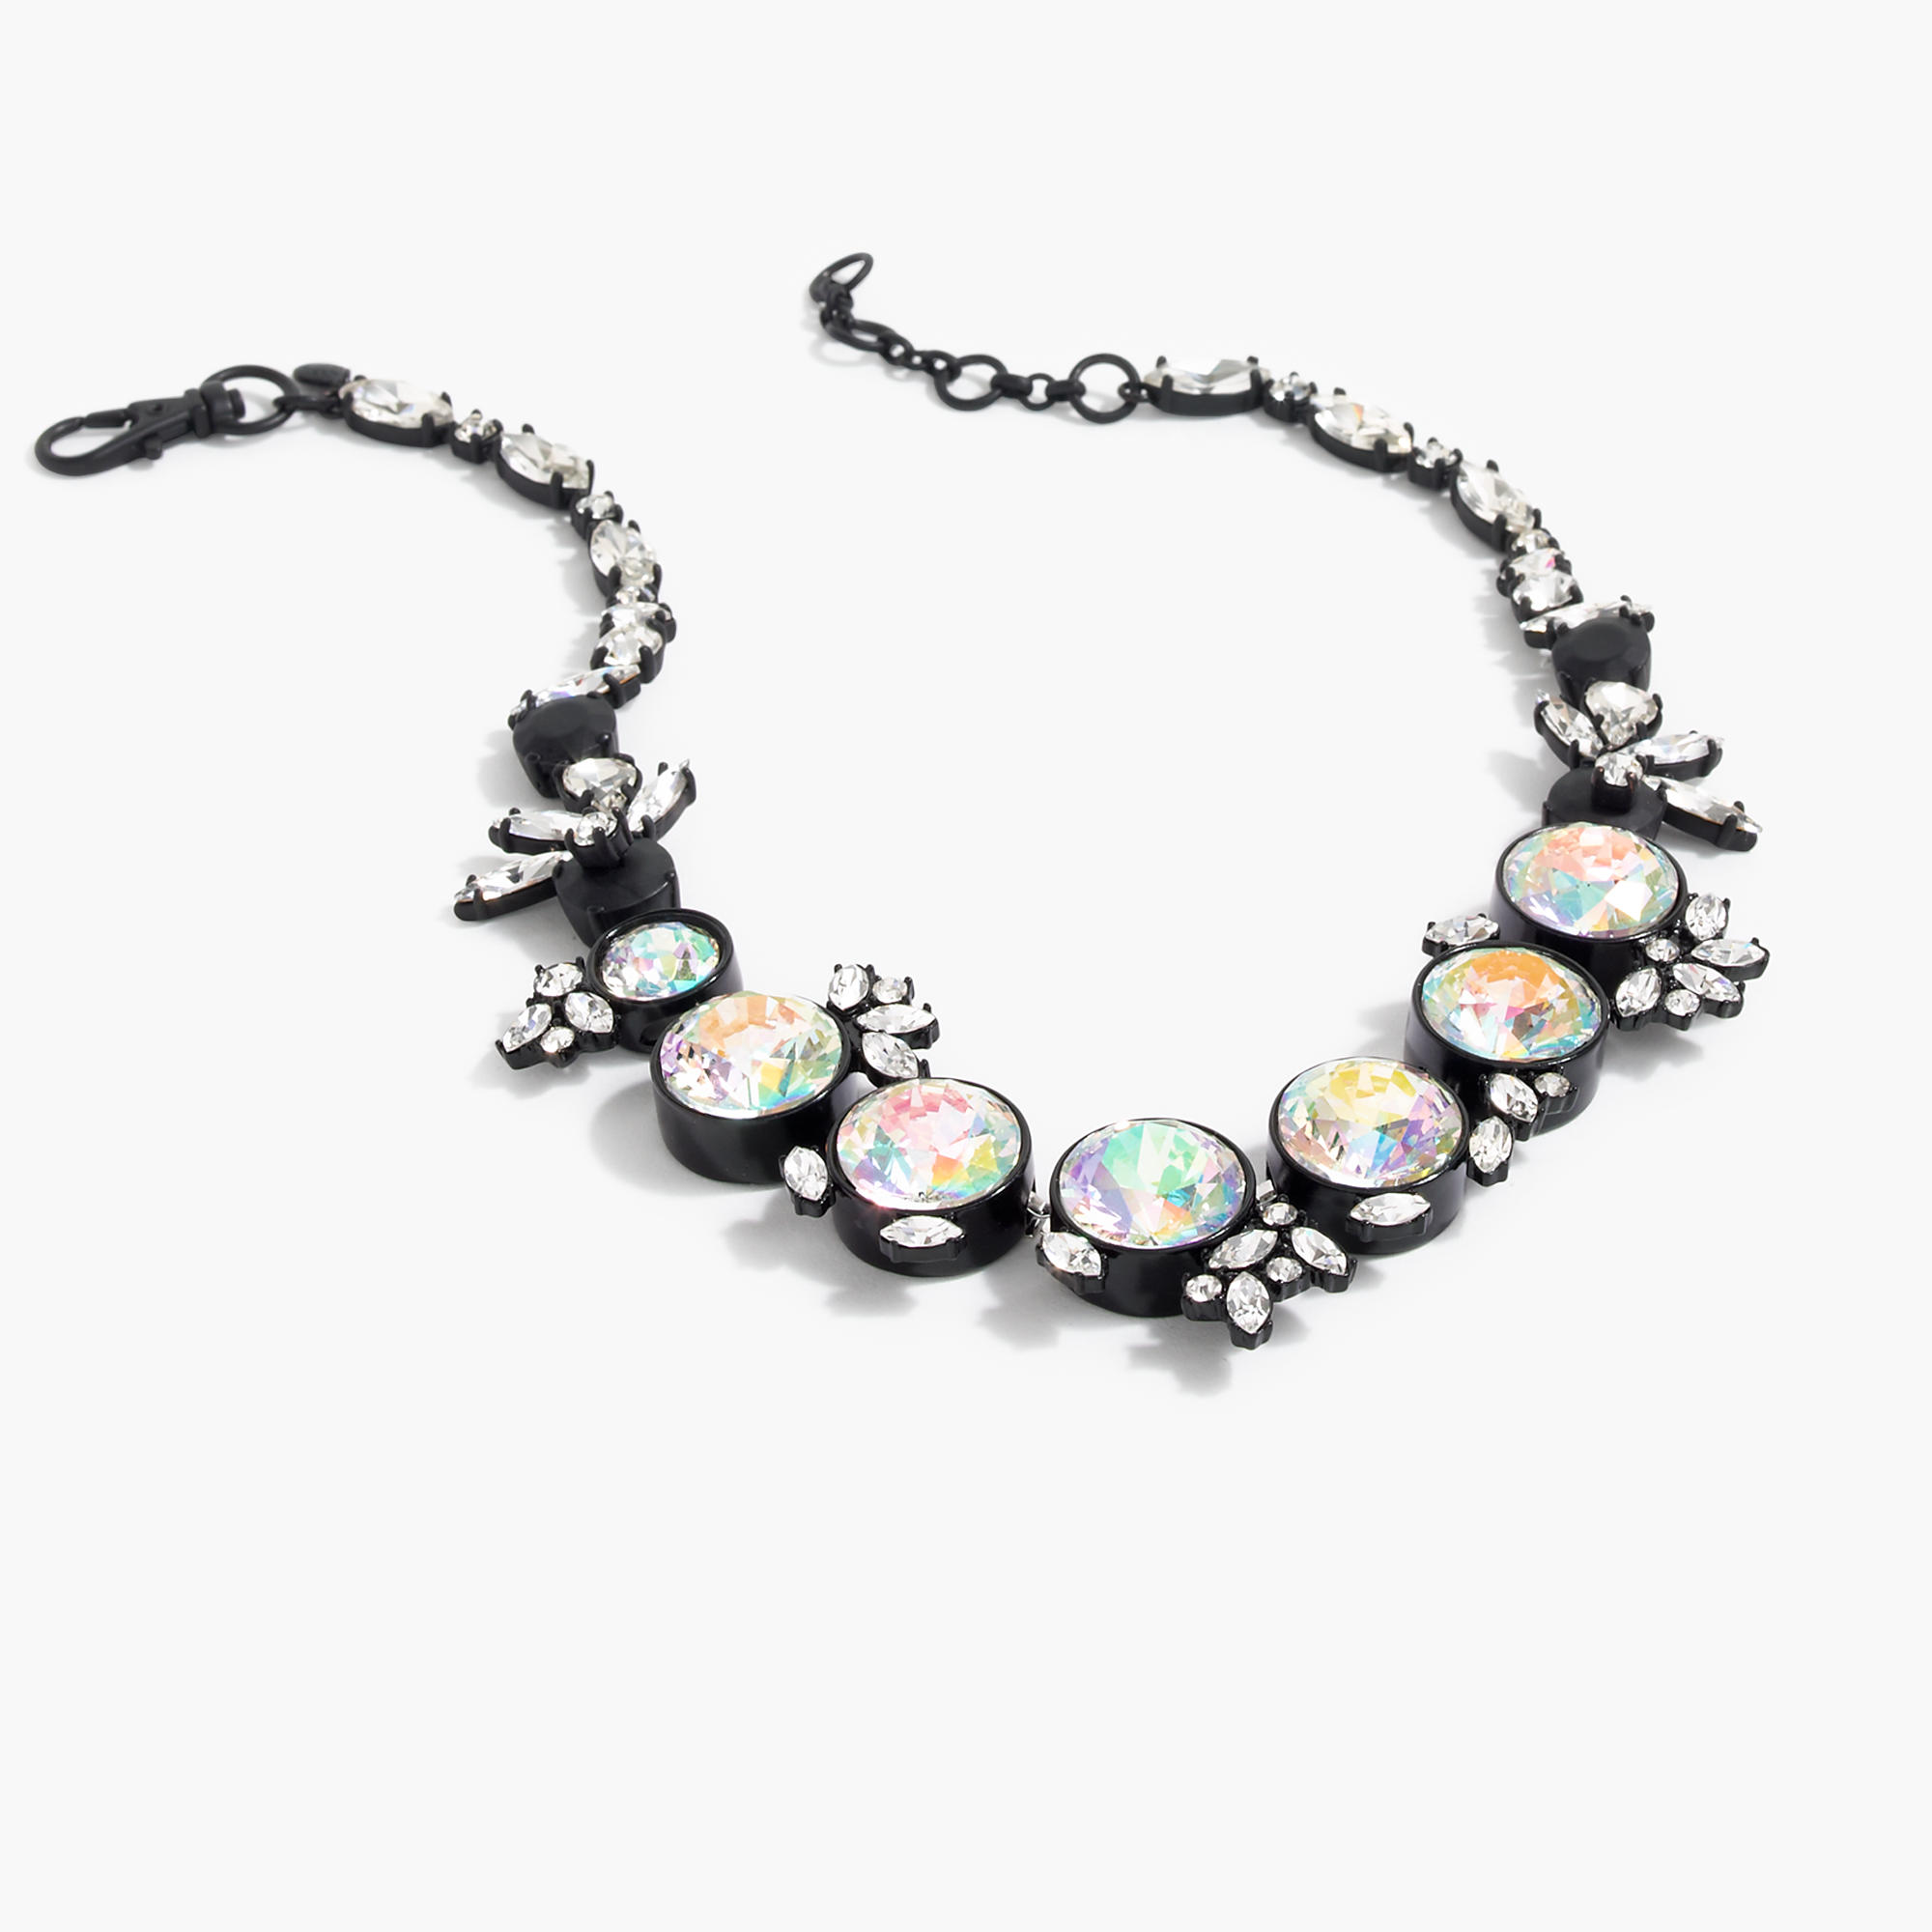 Iridescent crystal necklace j crew for J crew jewelry 2015